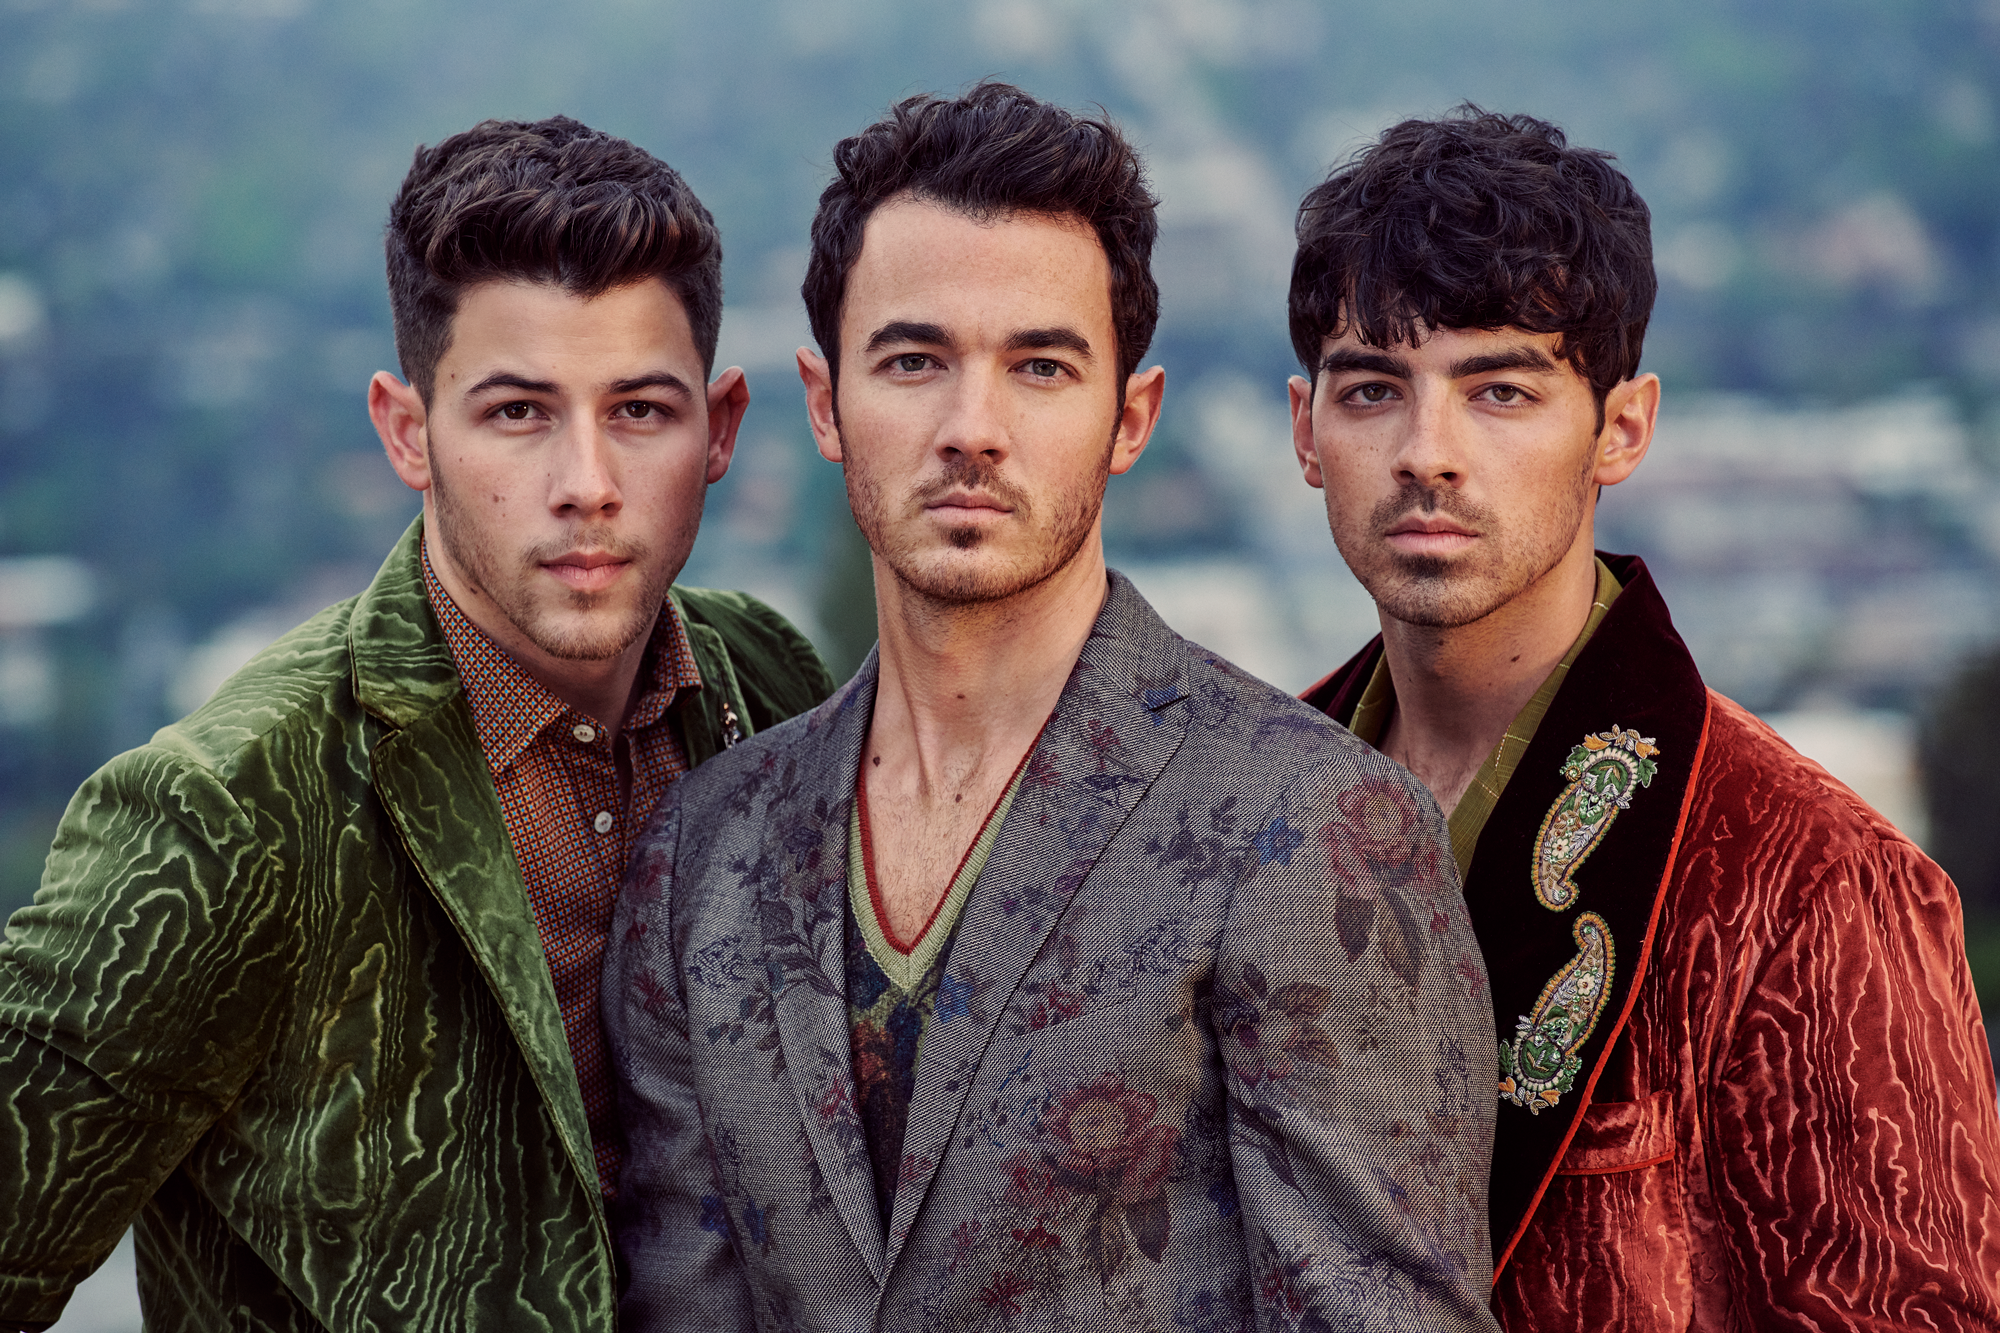 The Jonas Brothers for Harper's Bazaar X Eric Ray Davidson